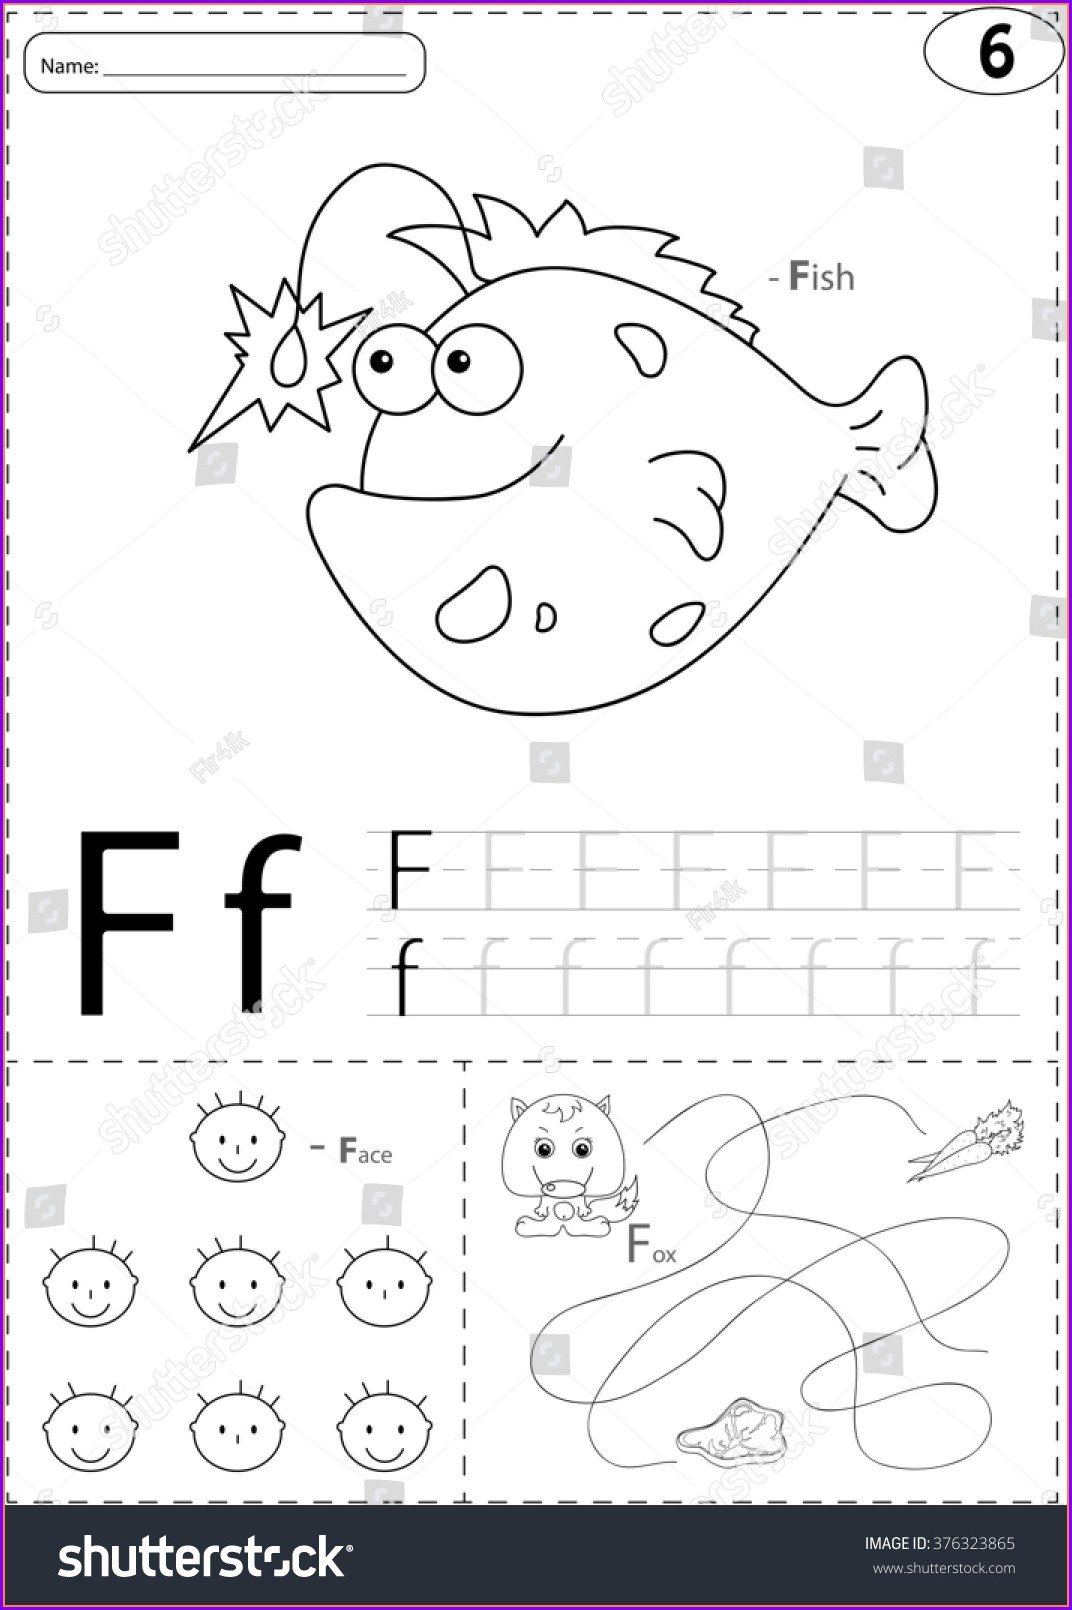 Cursive Writing Worksheets For Nursery